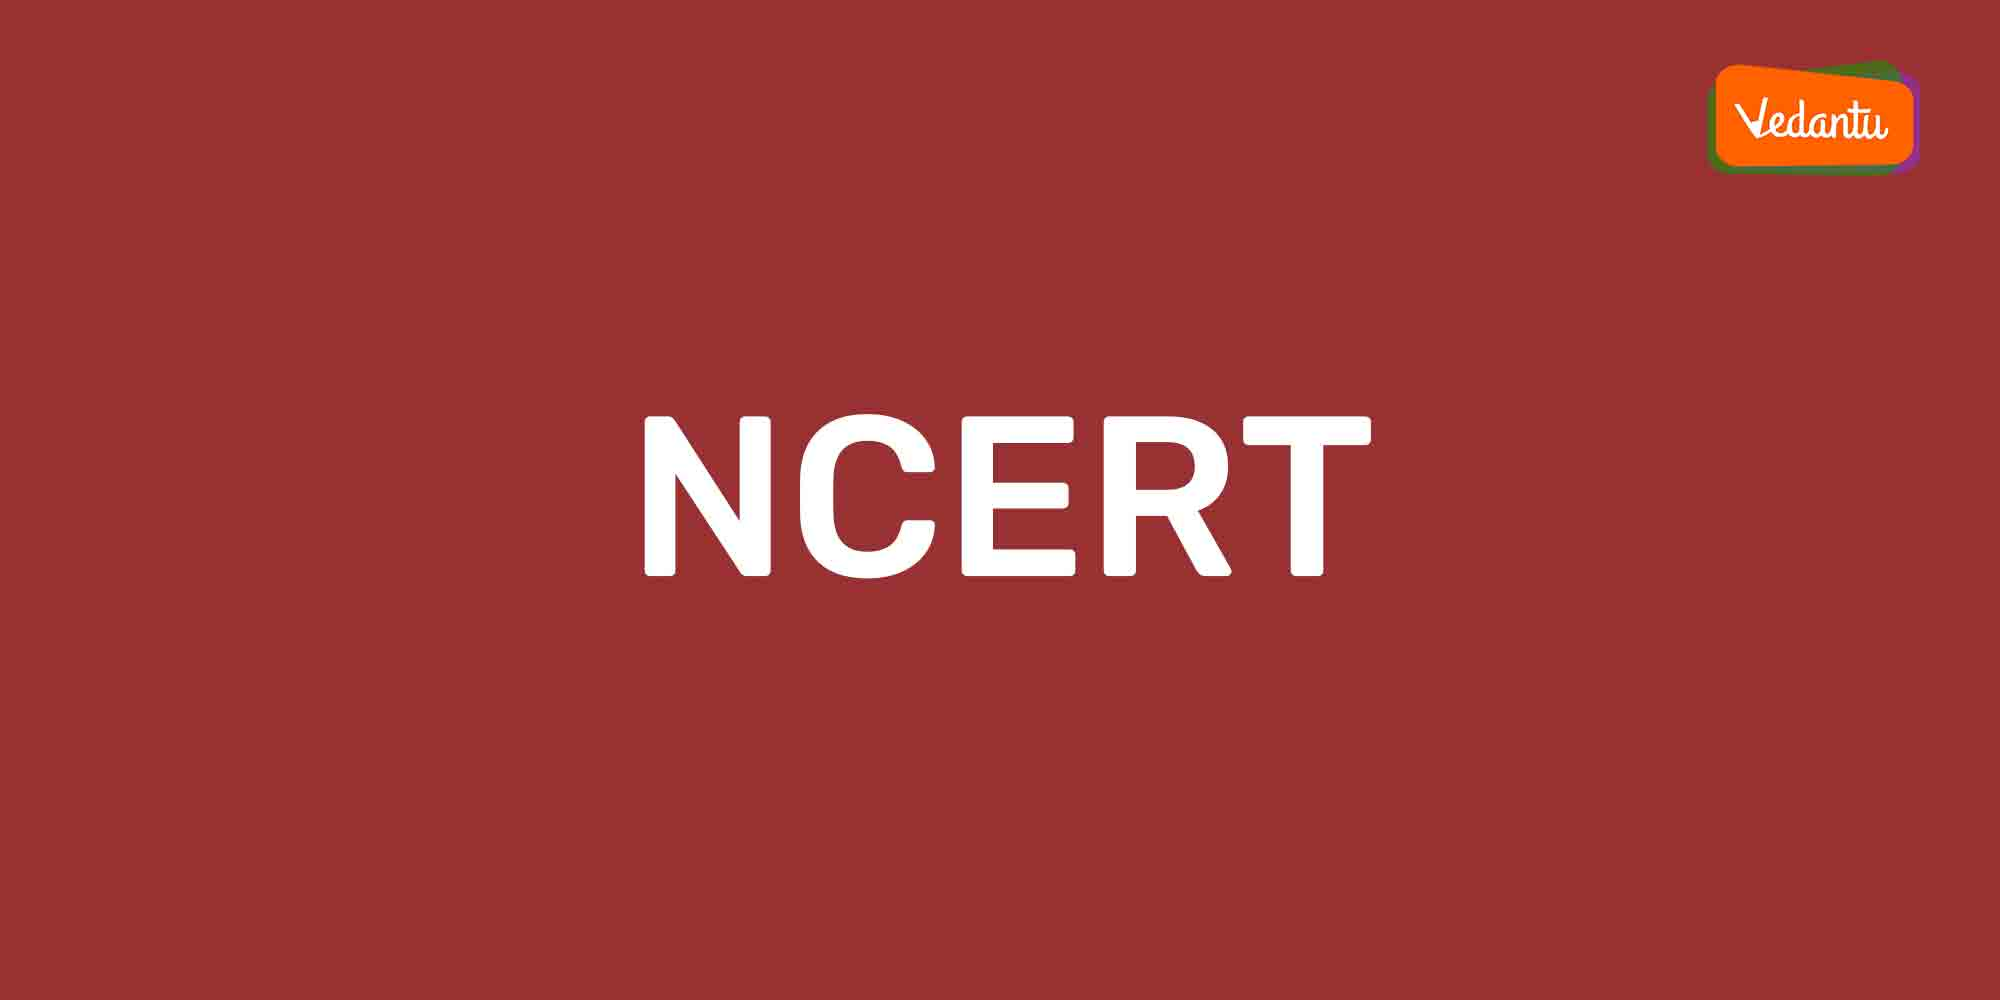 How to Get NCERT Books Online